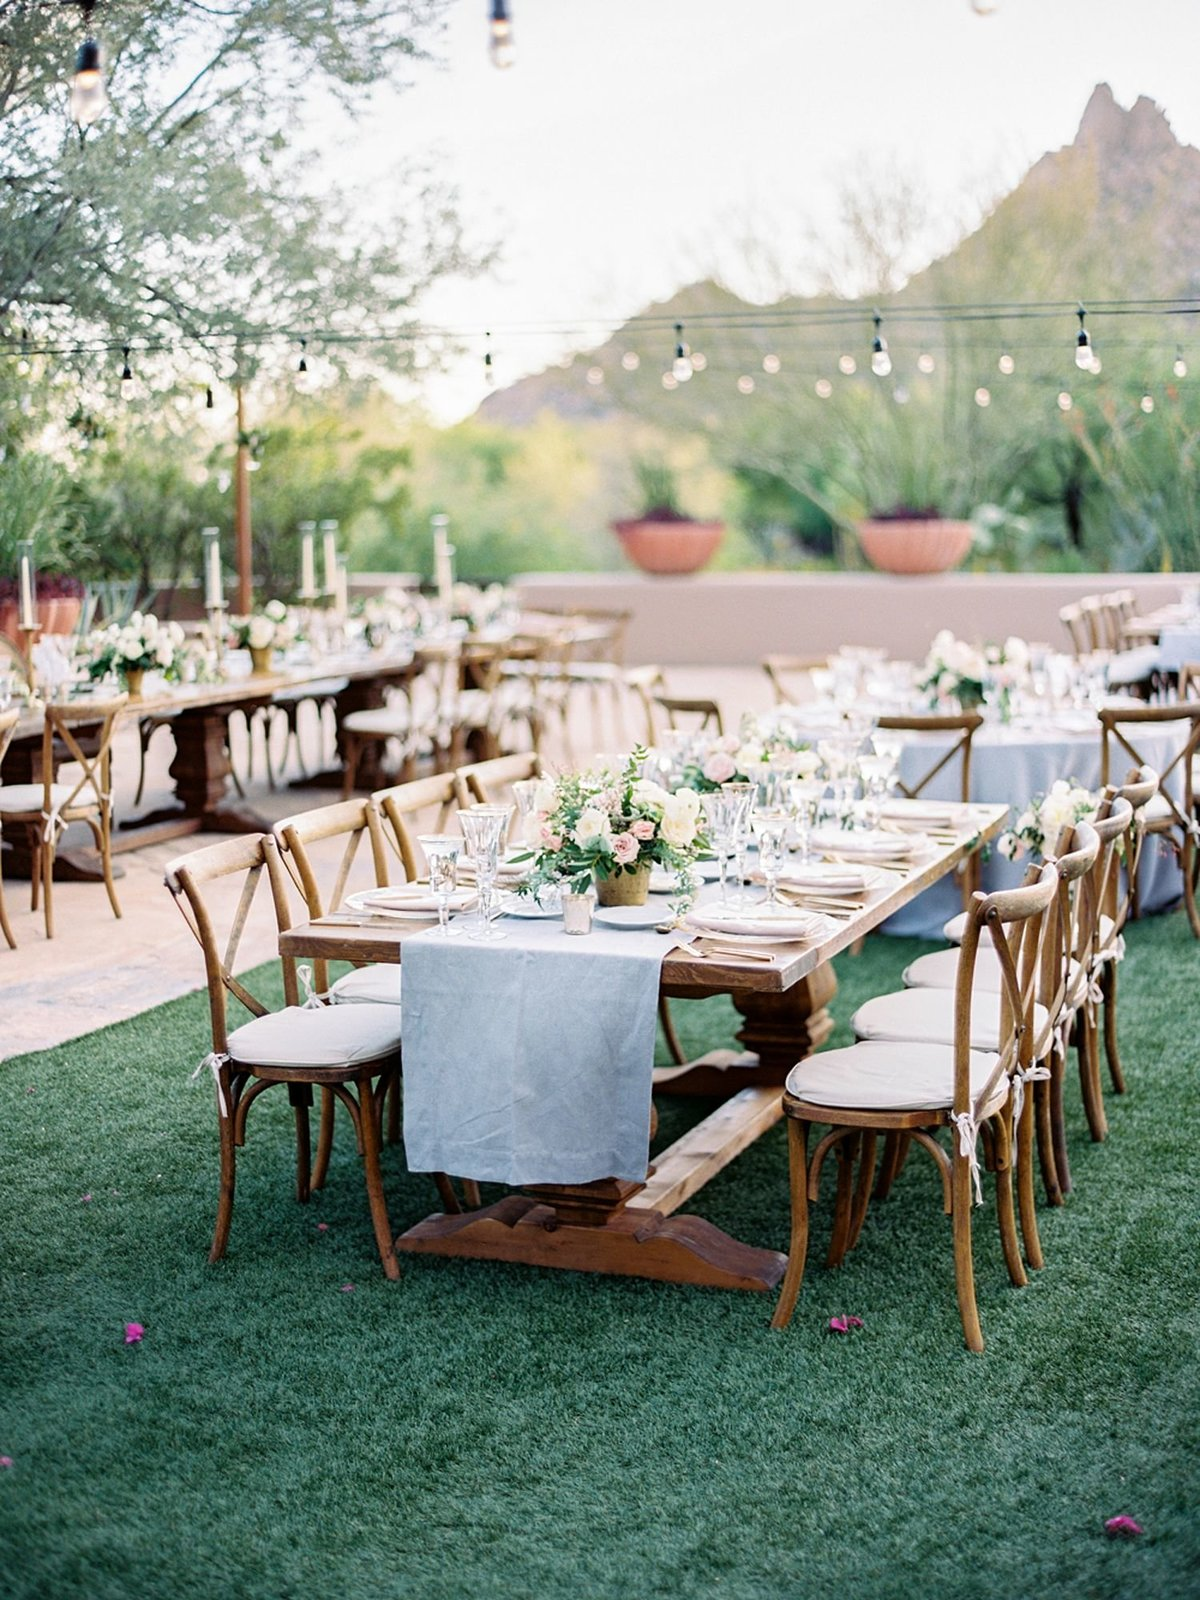 Imoni-Events-Daniel-Kim-Four-Seasons_0134